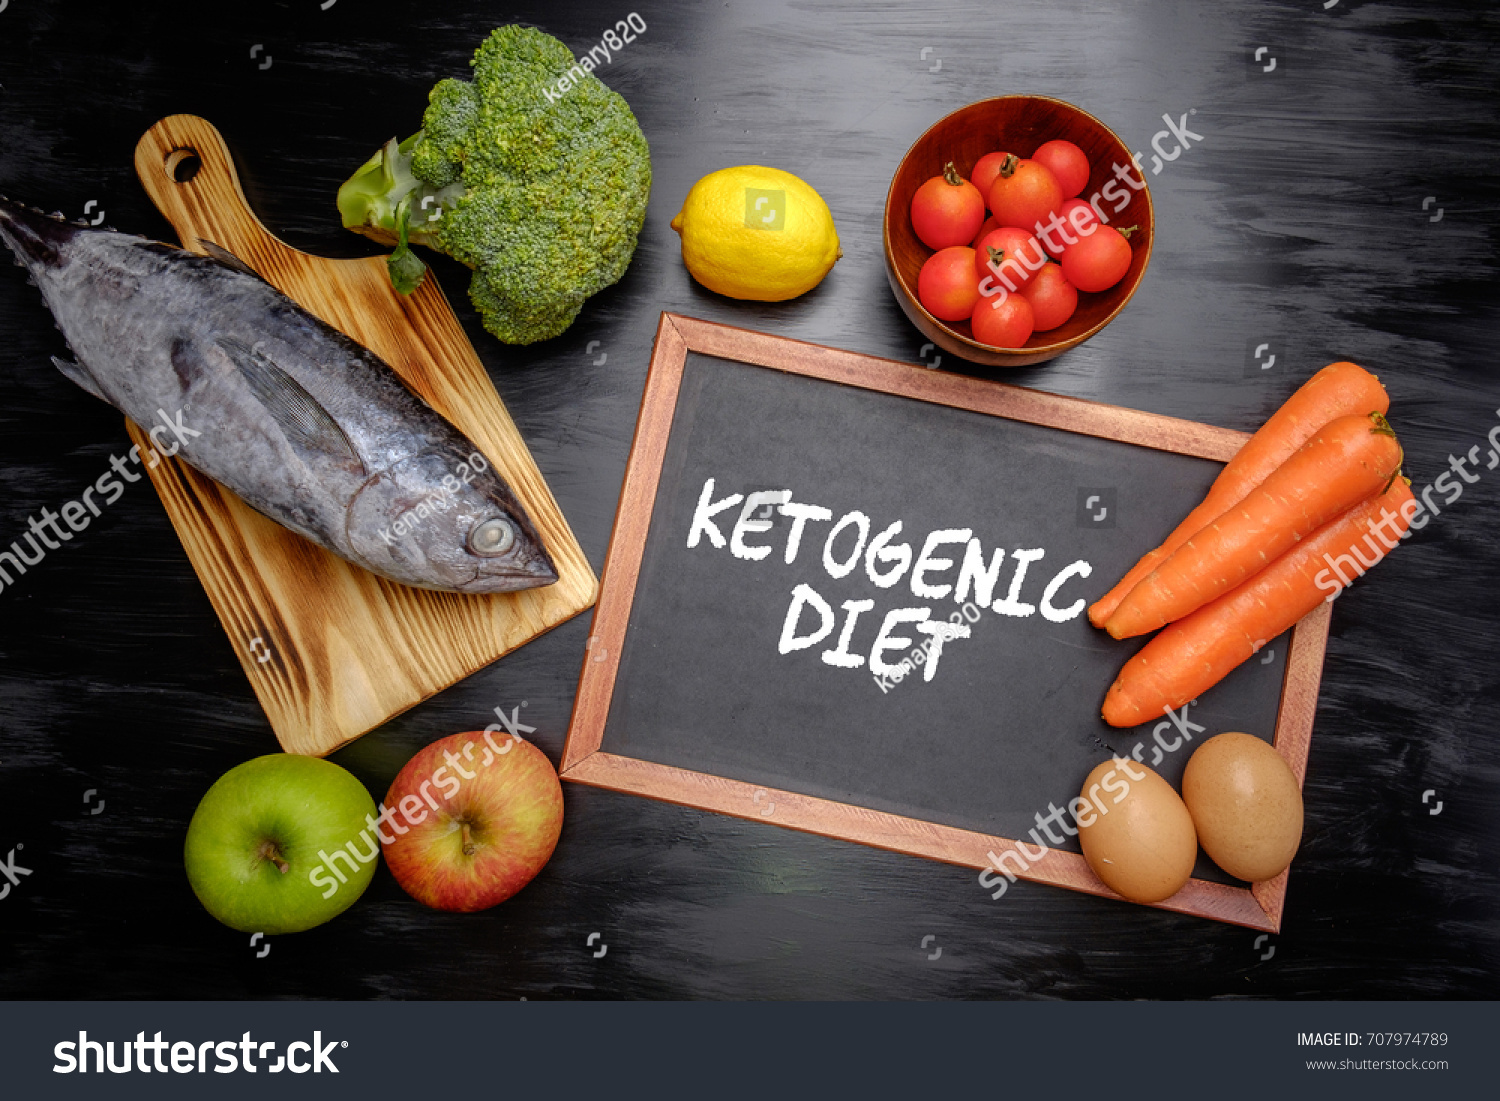 Ketogenic Diet (or Keto Diet) on chalkboard, health conceptual. Healthy fresh low carbohydrates food; egg, fish, lemon, tomatoes, apple, carrot and broccoli. #707974789